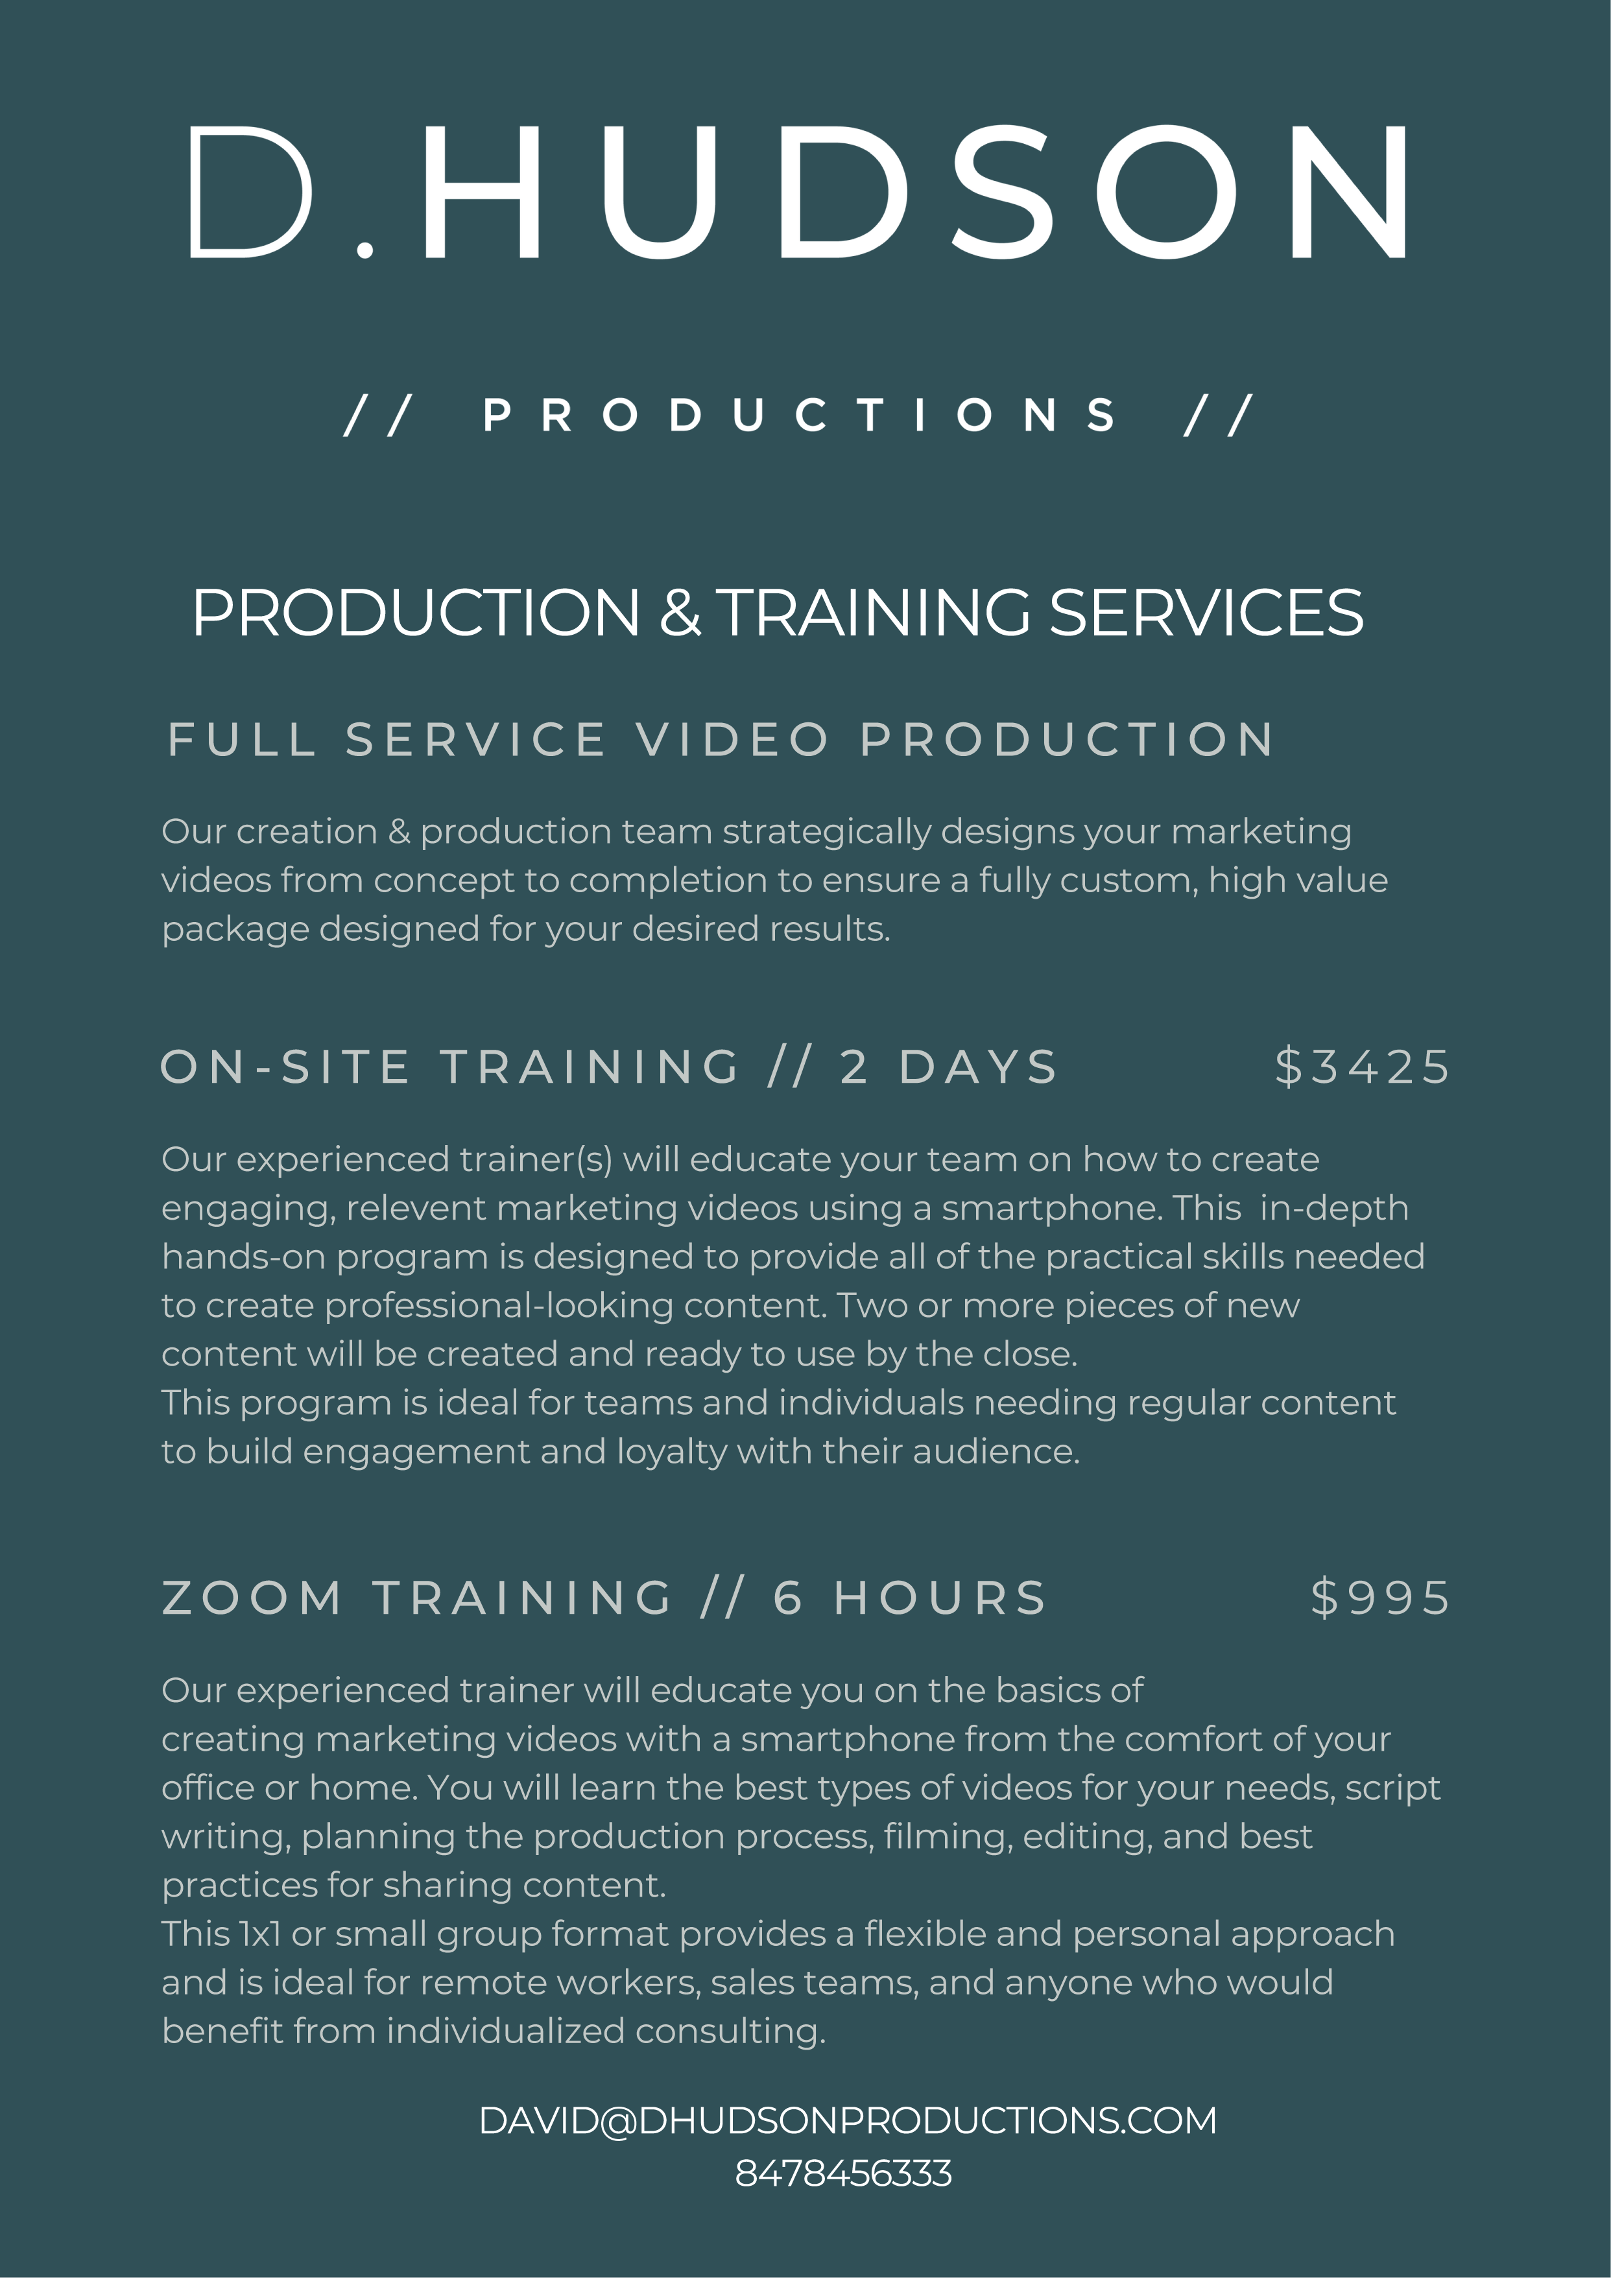 DHP - Production & Training Services